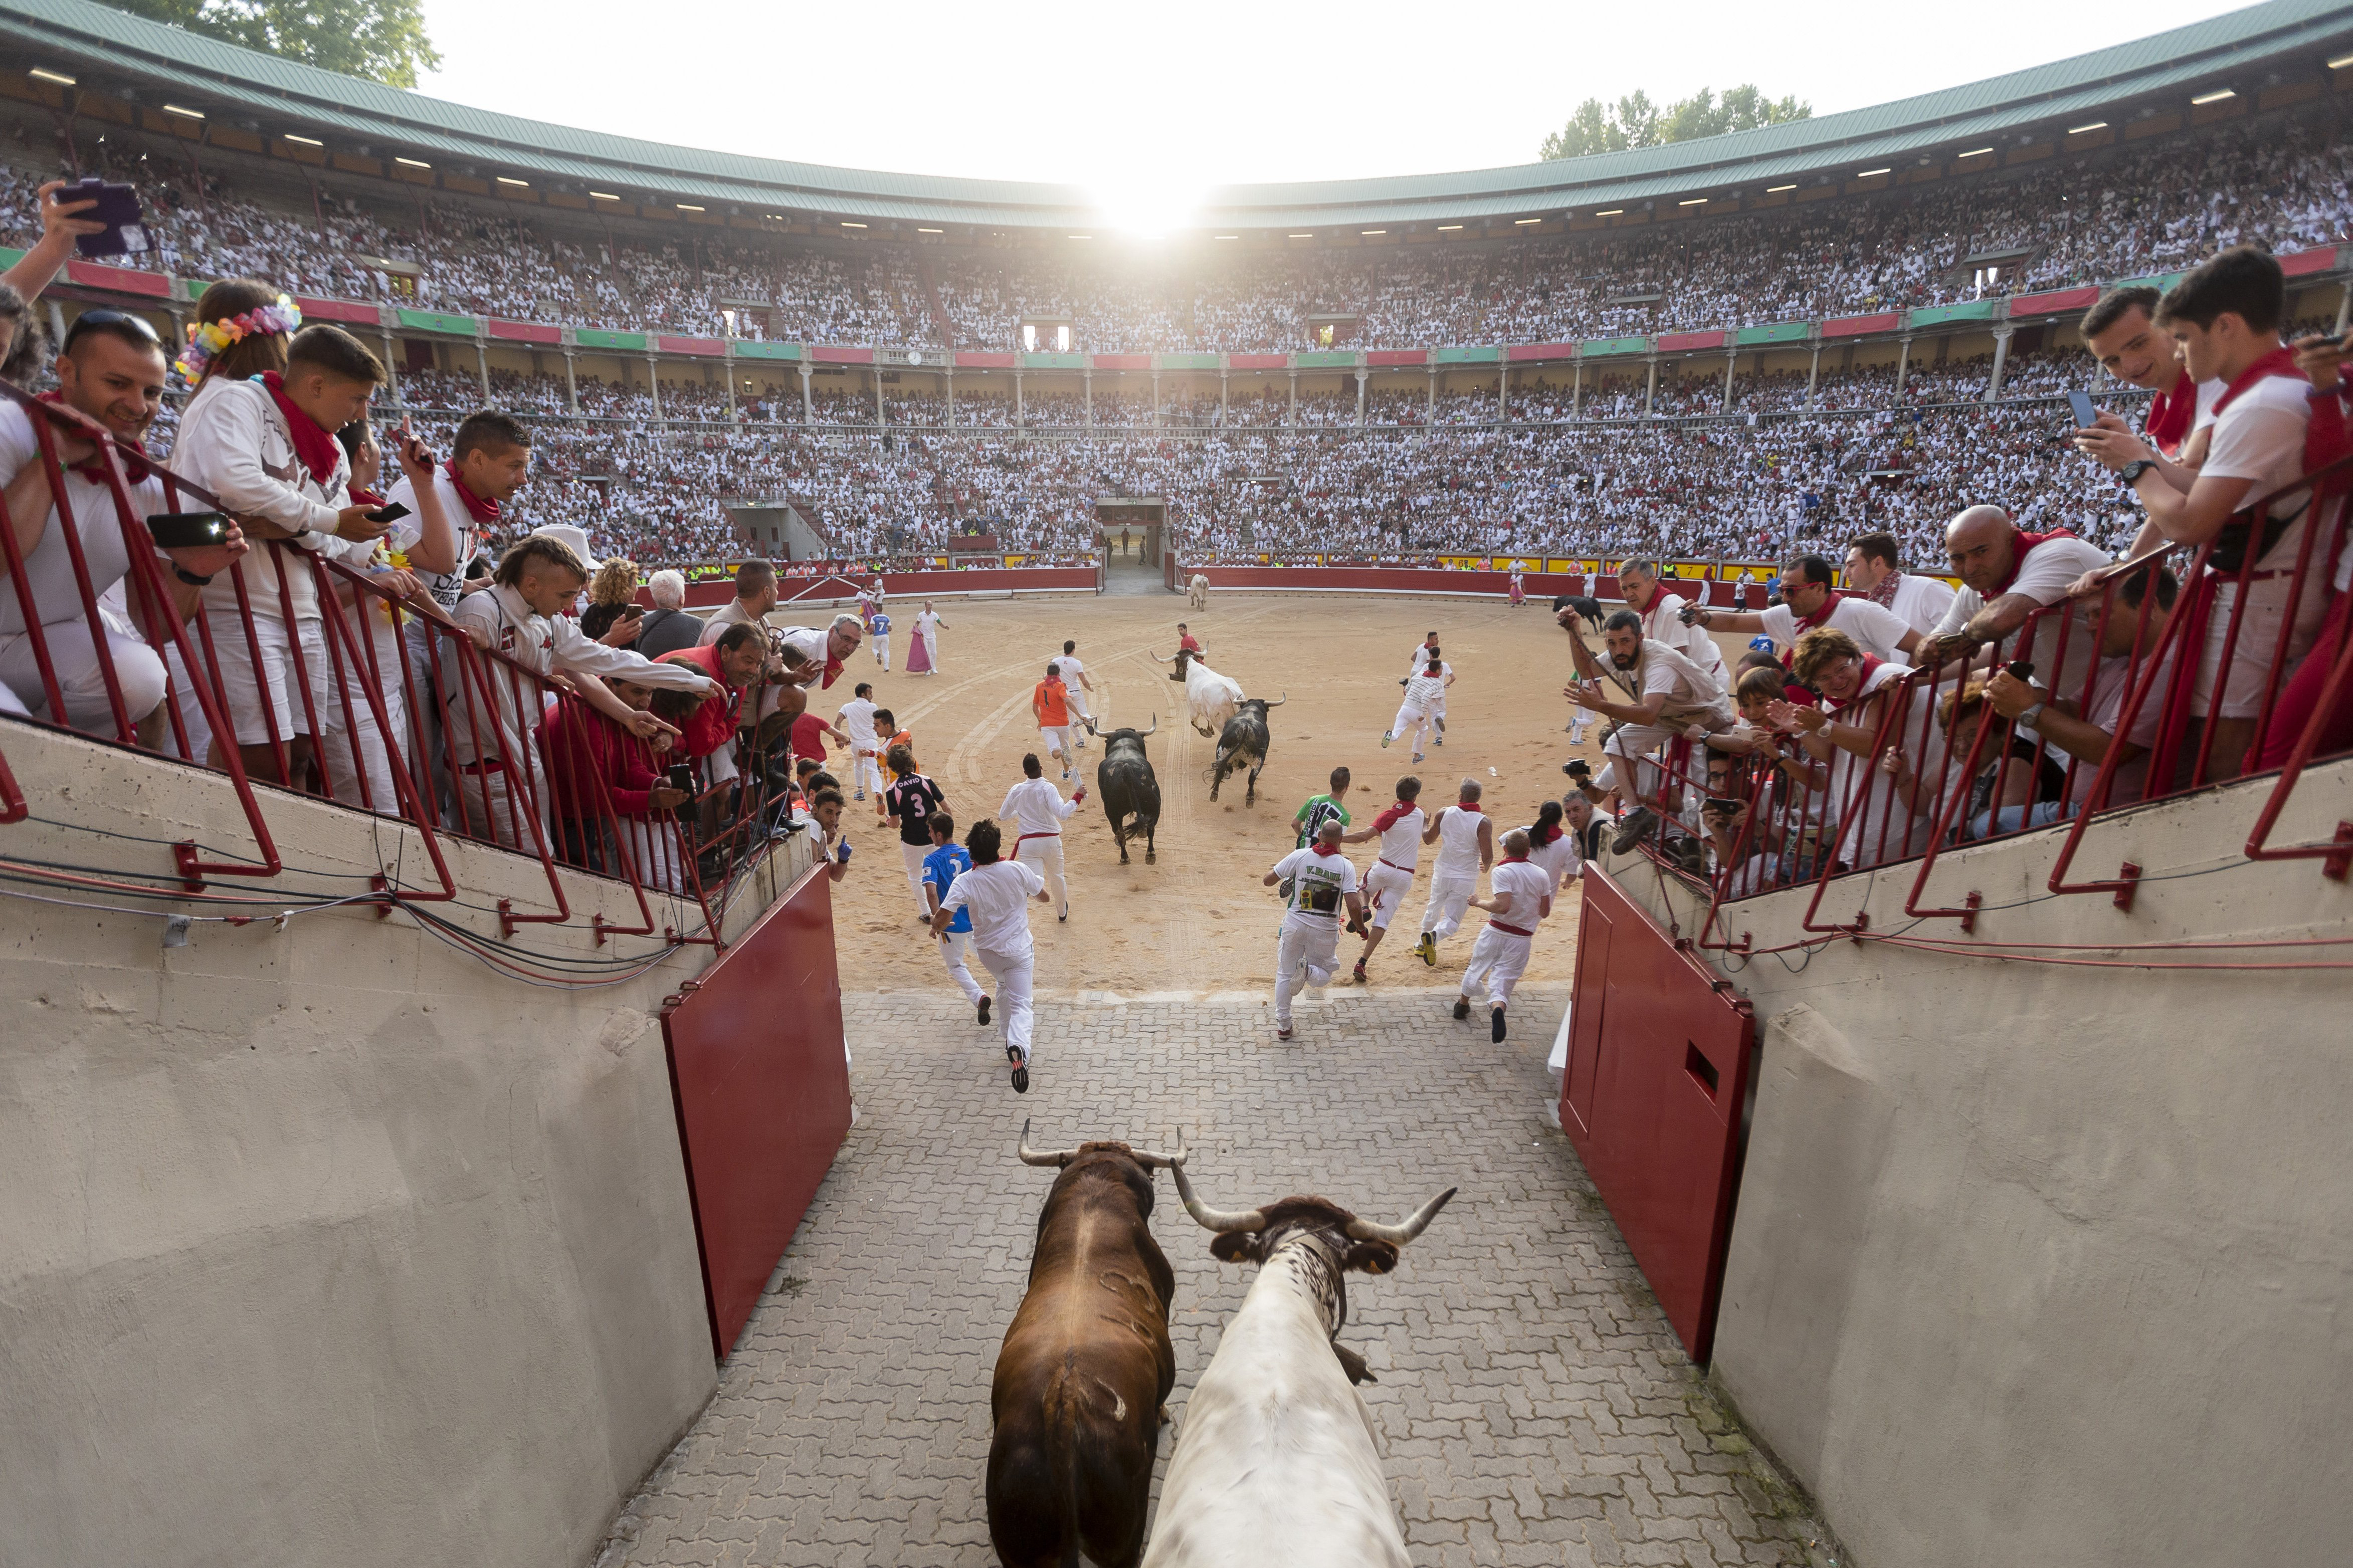 Revelers are chased by Jandilla's ranch fighting bull on the entrance to the bullring during the running of the bulls of the San Fermin festival in Pamplona, Spain on July 7, 2015.